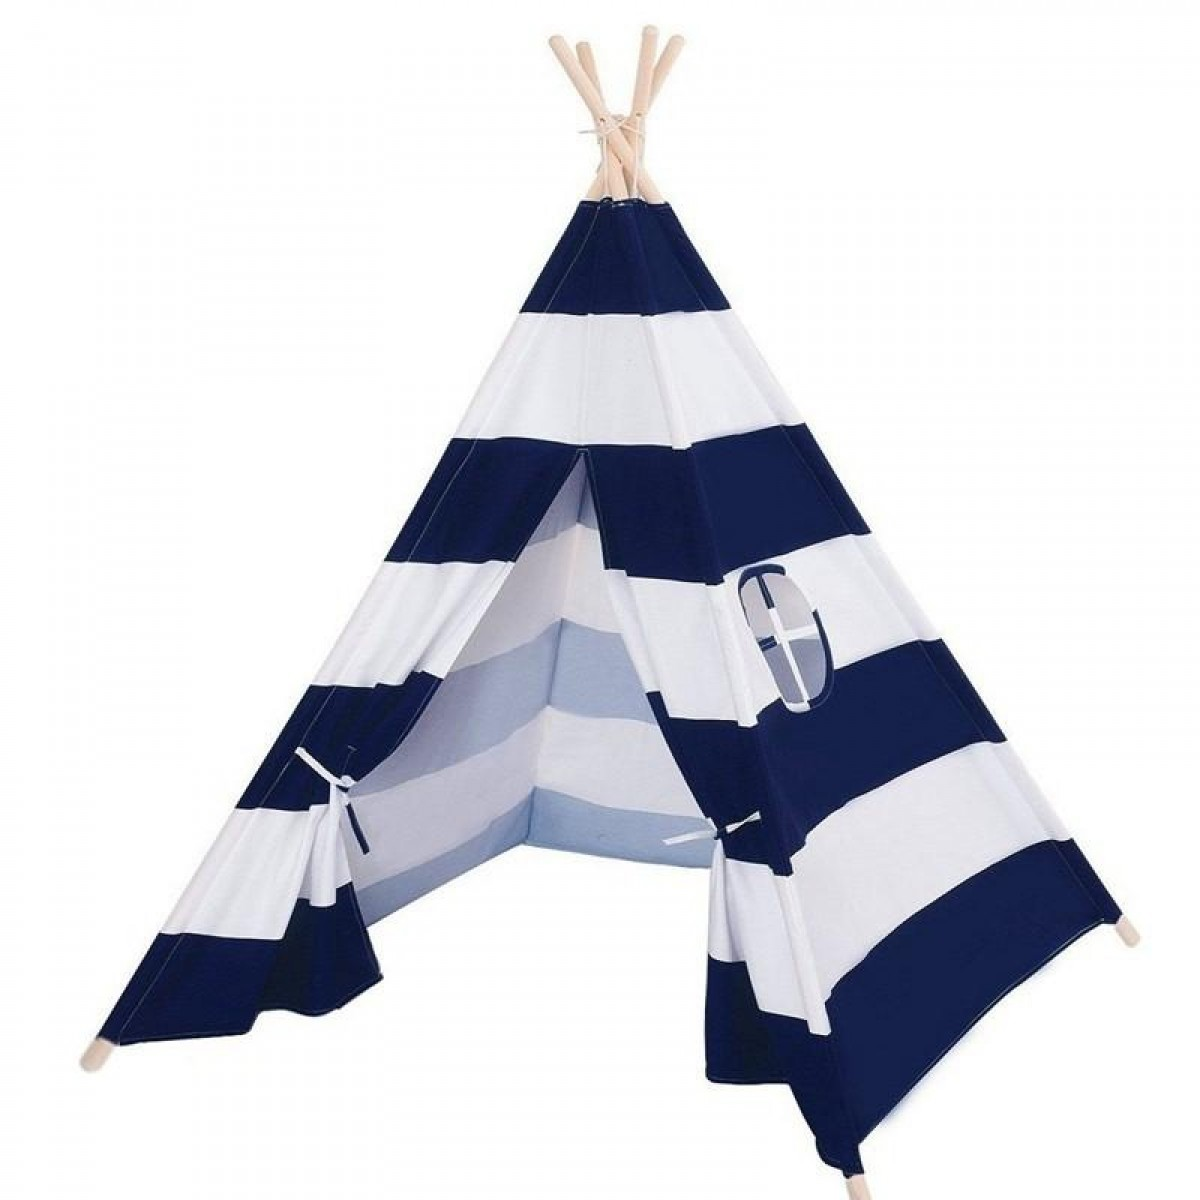 Teepee Tent - Blue and white striped